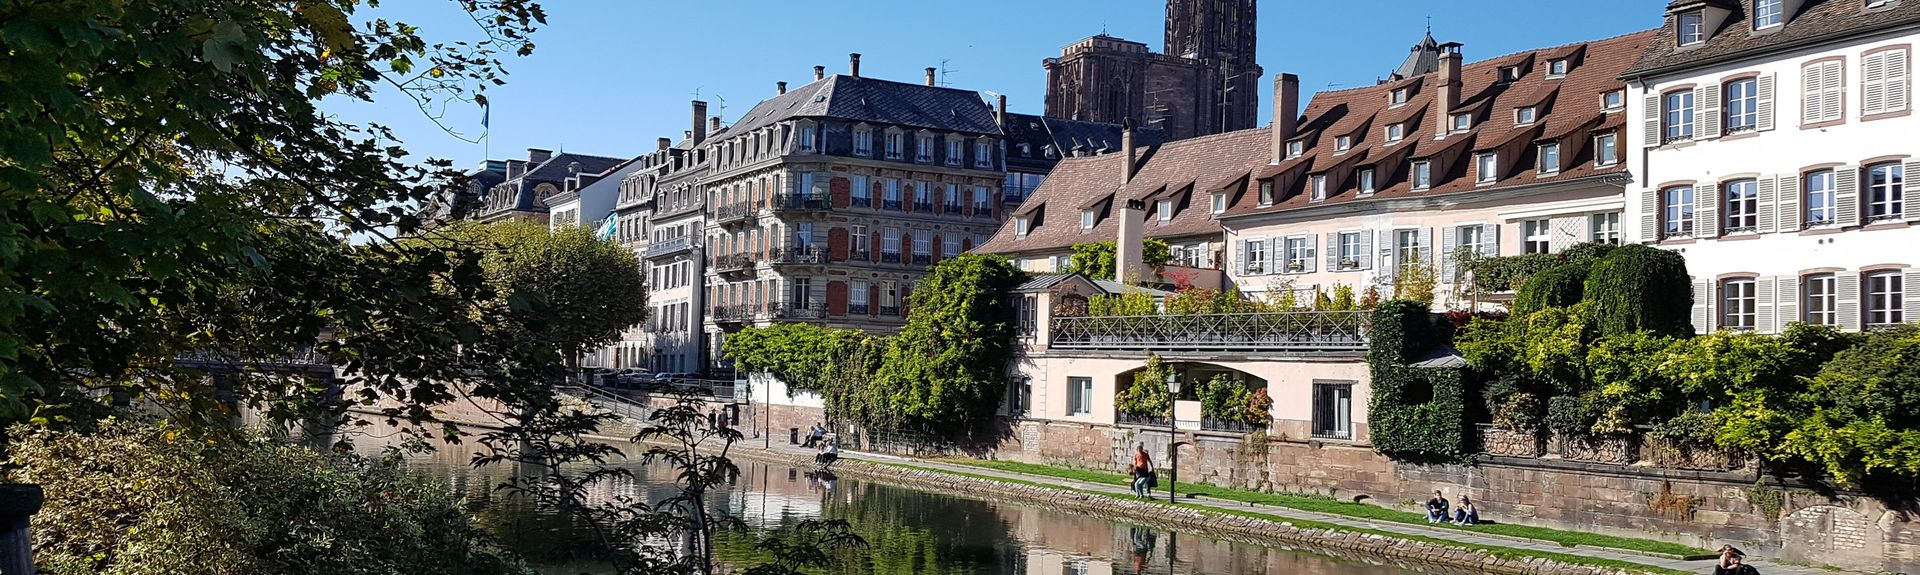 Kable, Strasbourg, France